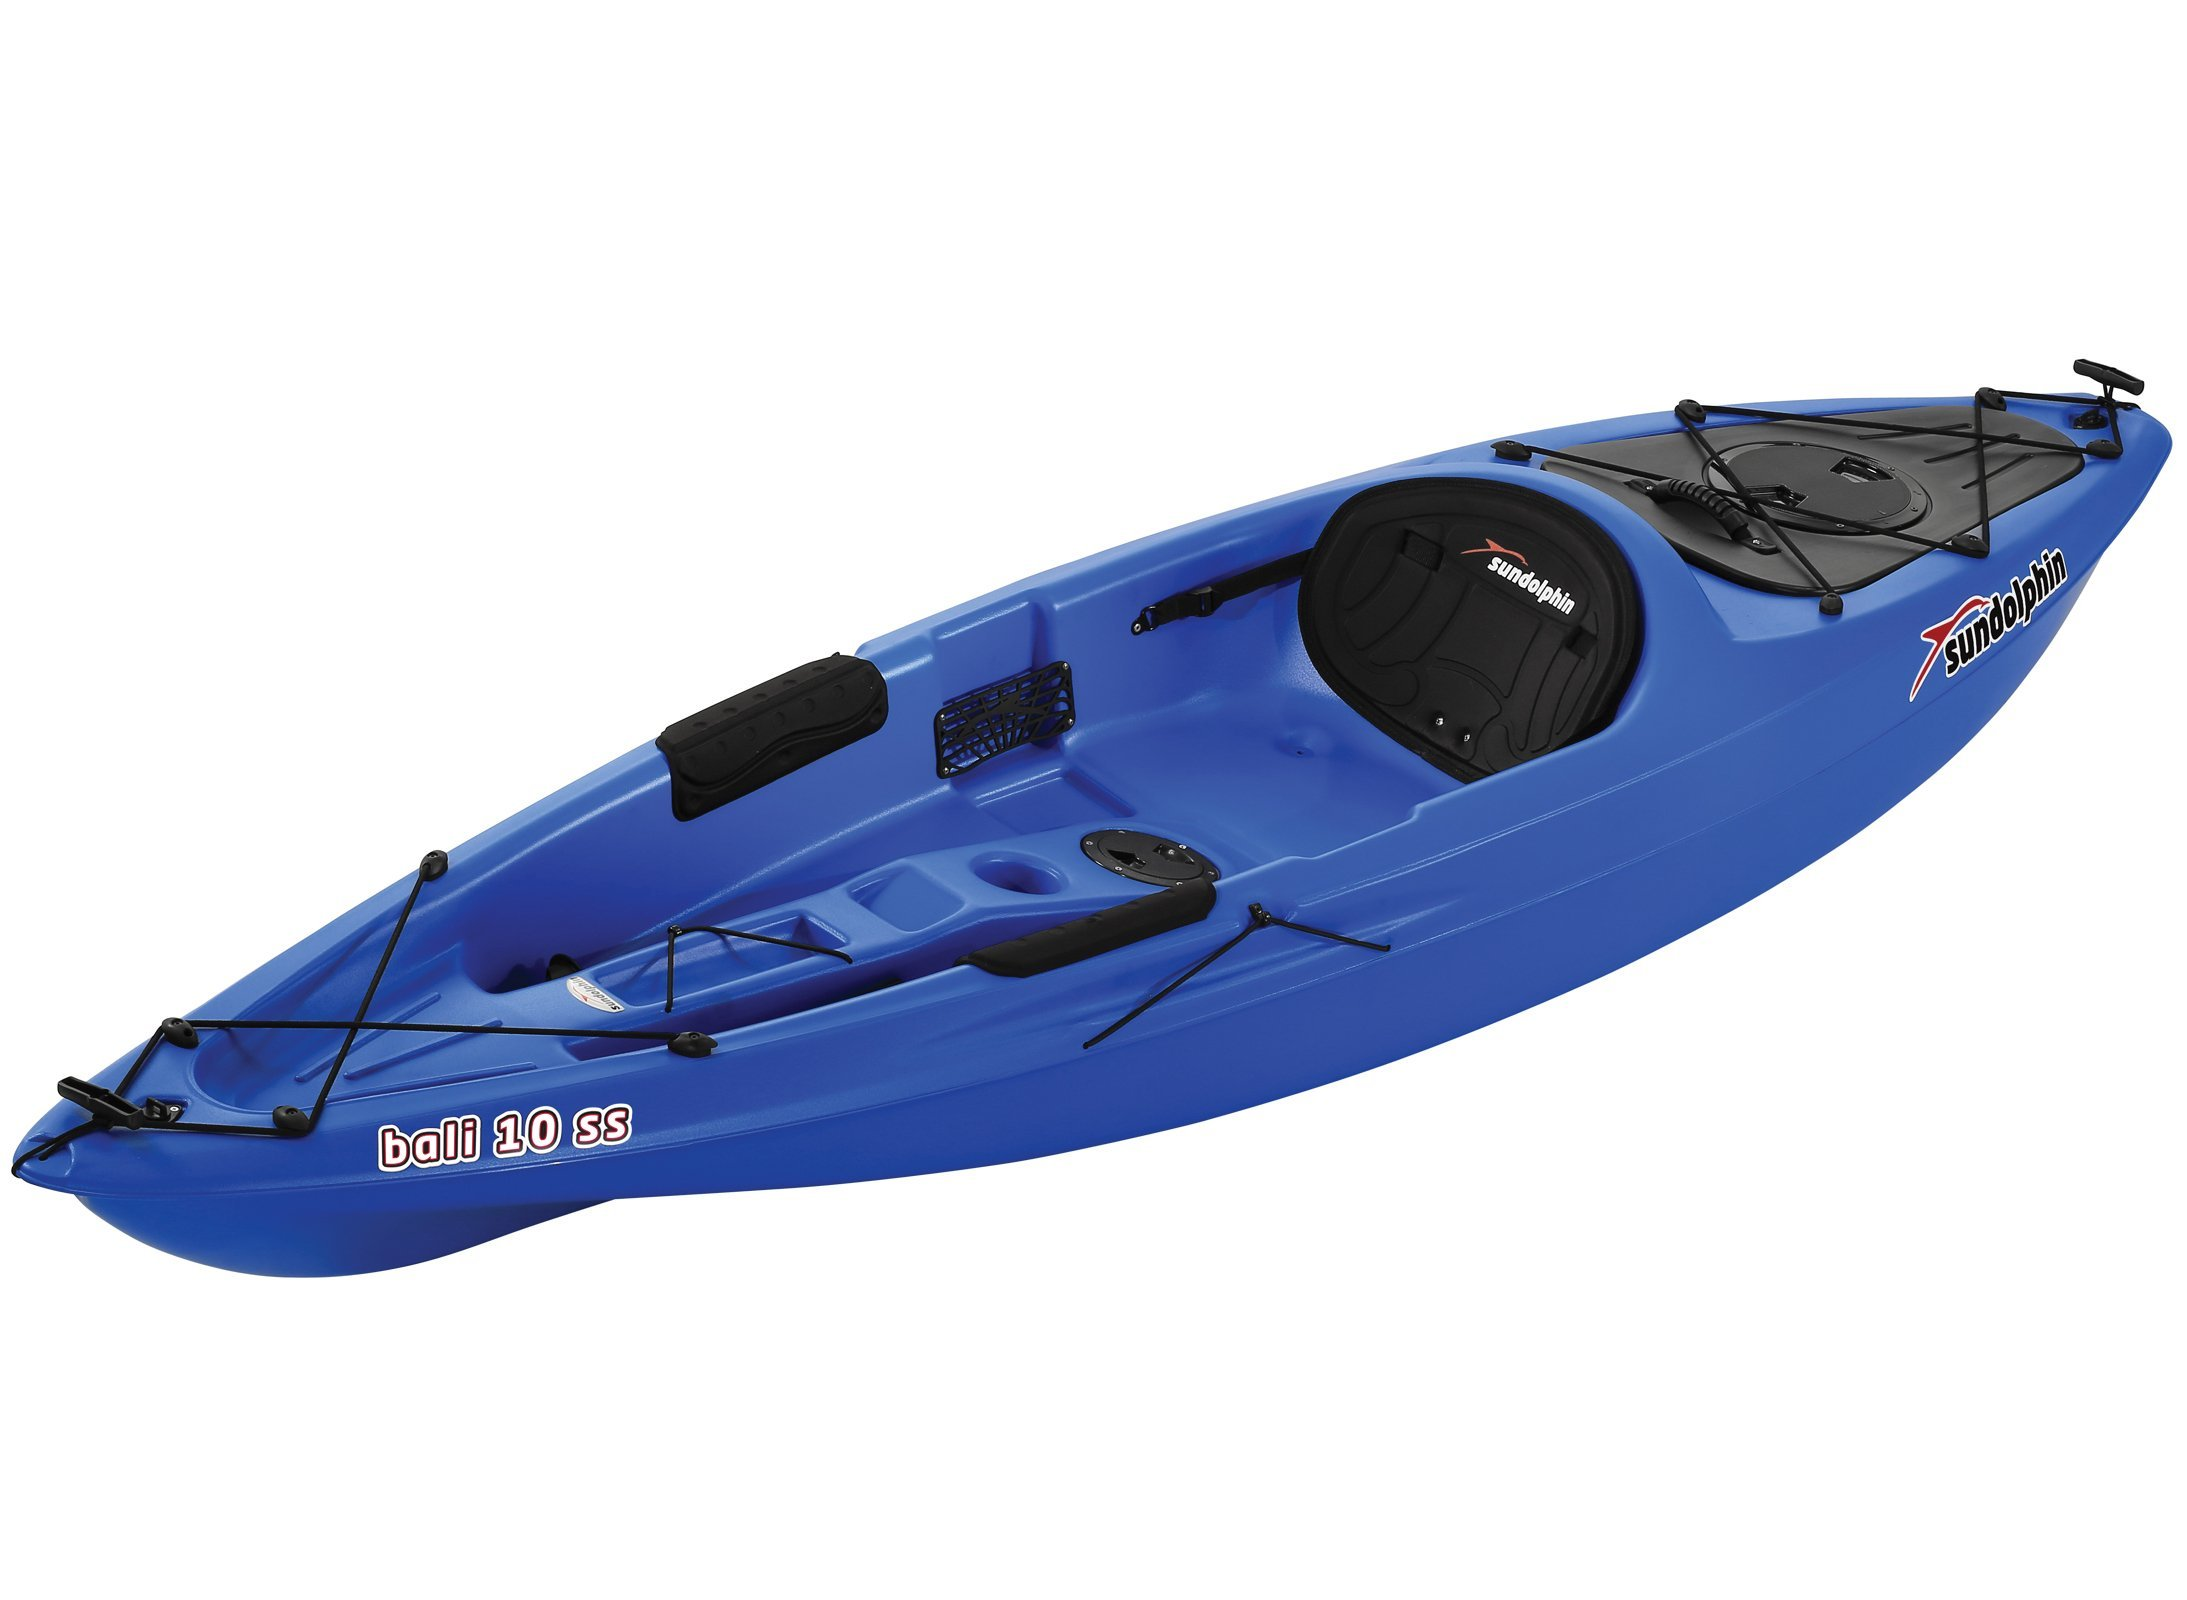 SUNDOLPHIN Sun Dolphin Bali SS Sit-on top Kayak (Blue, 10-Feet) by SUNDOLPHIN